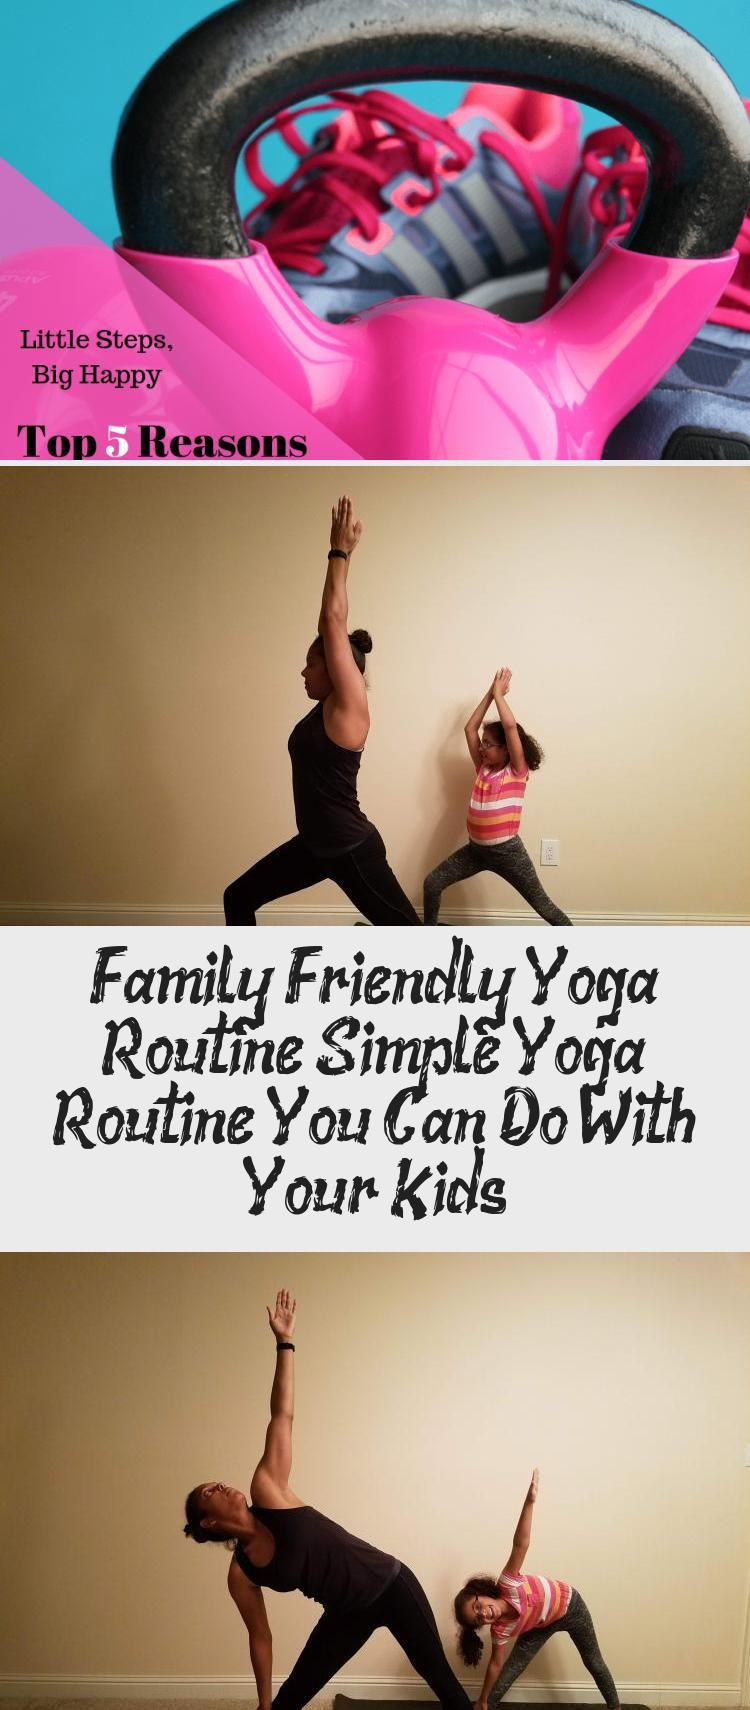 Family Friendly Yoga Routine. A simple yoga routine you can do with your kids. A 15 minute yoga rout...